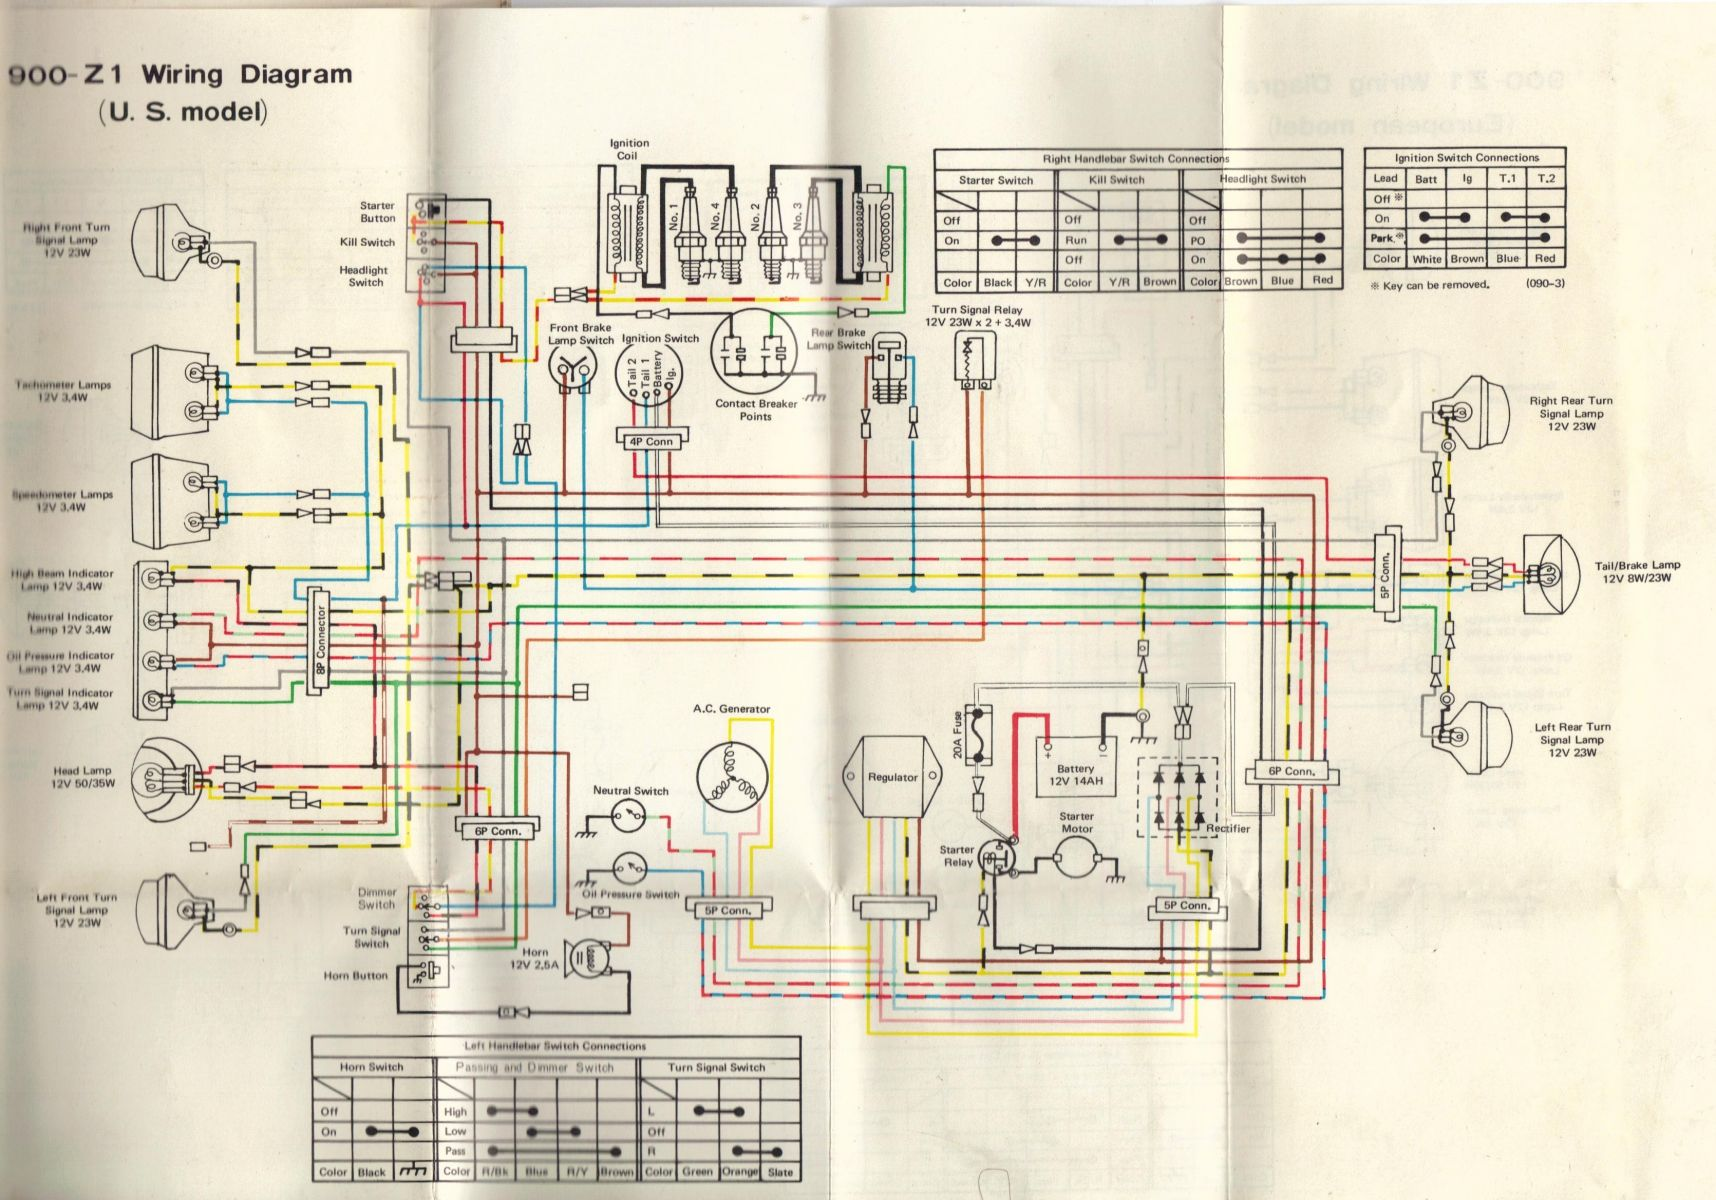 z1wiringdiagram2001 2?resize\=1716%2C1200\&ssl\=1 z1 wiring diagram coleman furnace wiring diagram \u2022 wiring diagrams Philco Model 60 at readyjetset.co